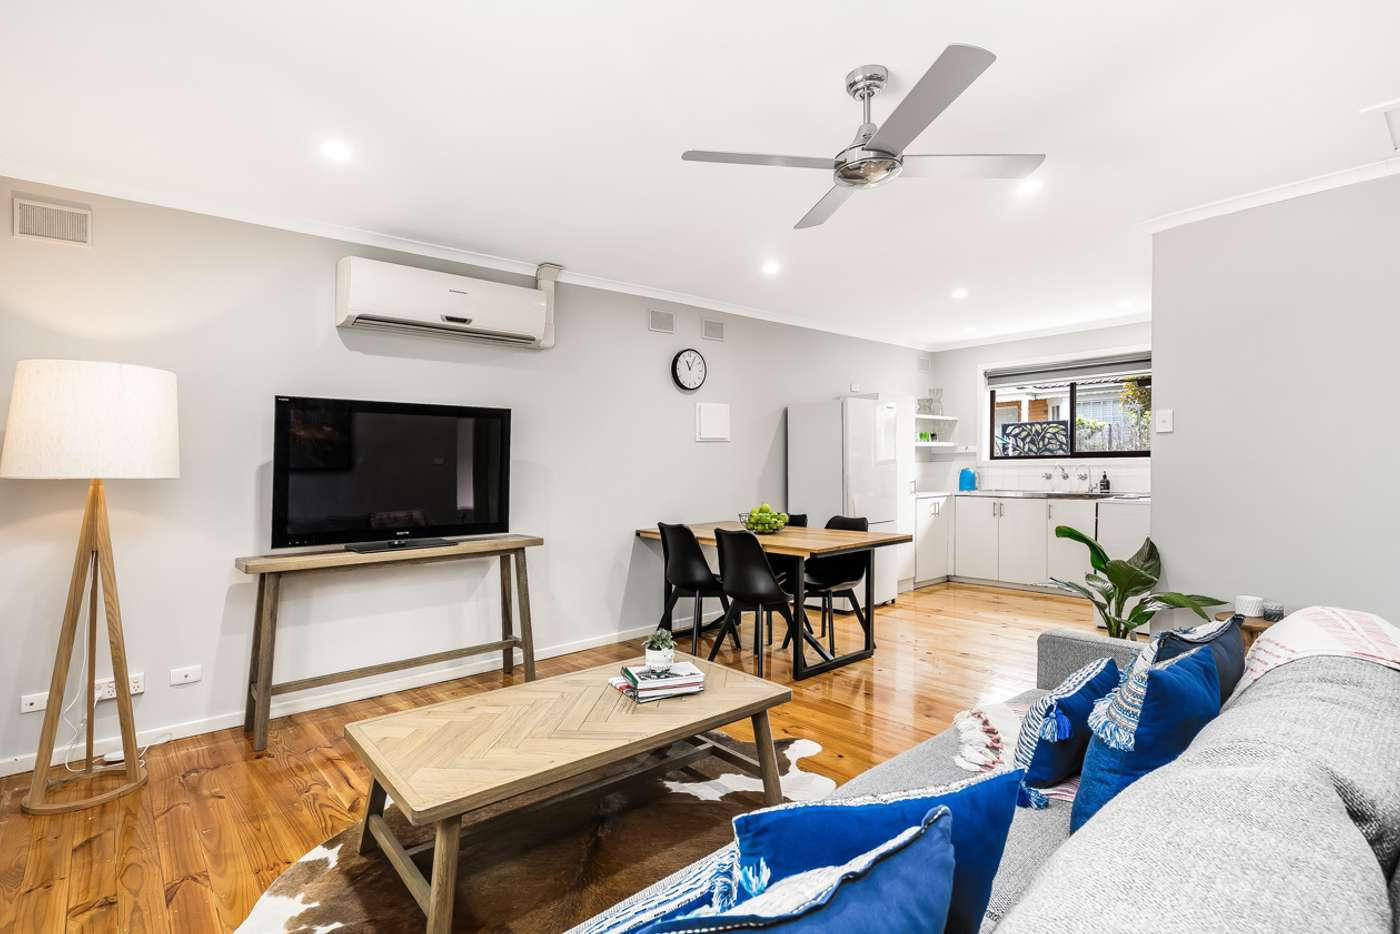 Main view of Homely unit listing, 2/28 Cator Street, Glenside SA 5065